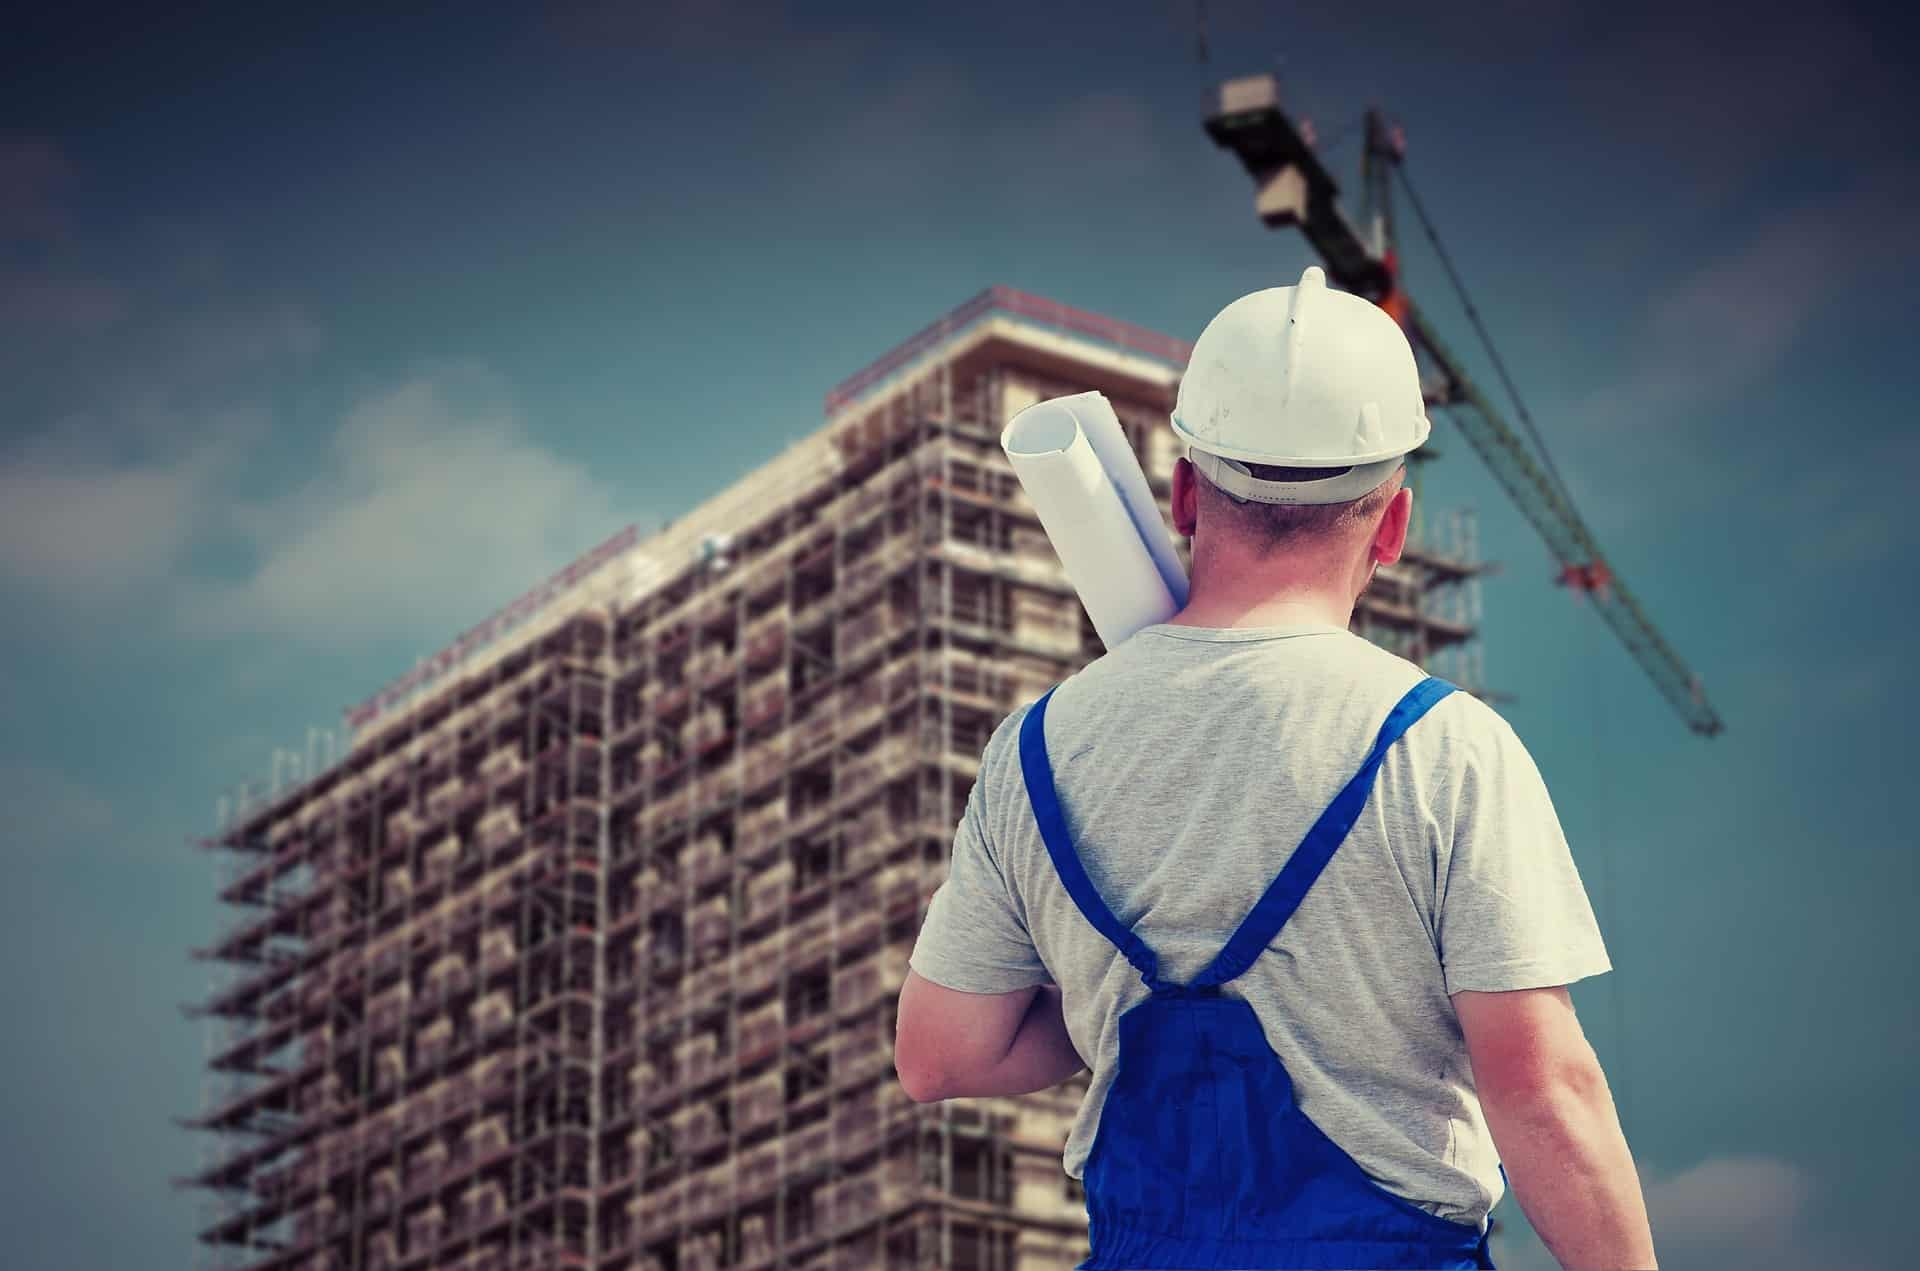 Construction Health and Safety in the workplace